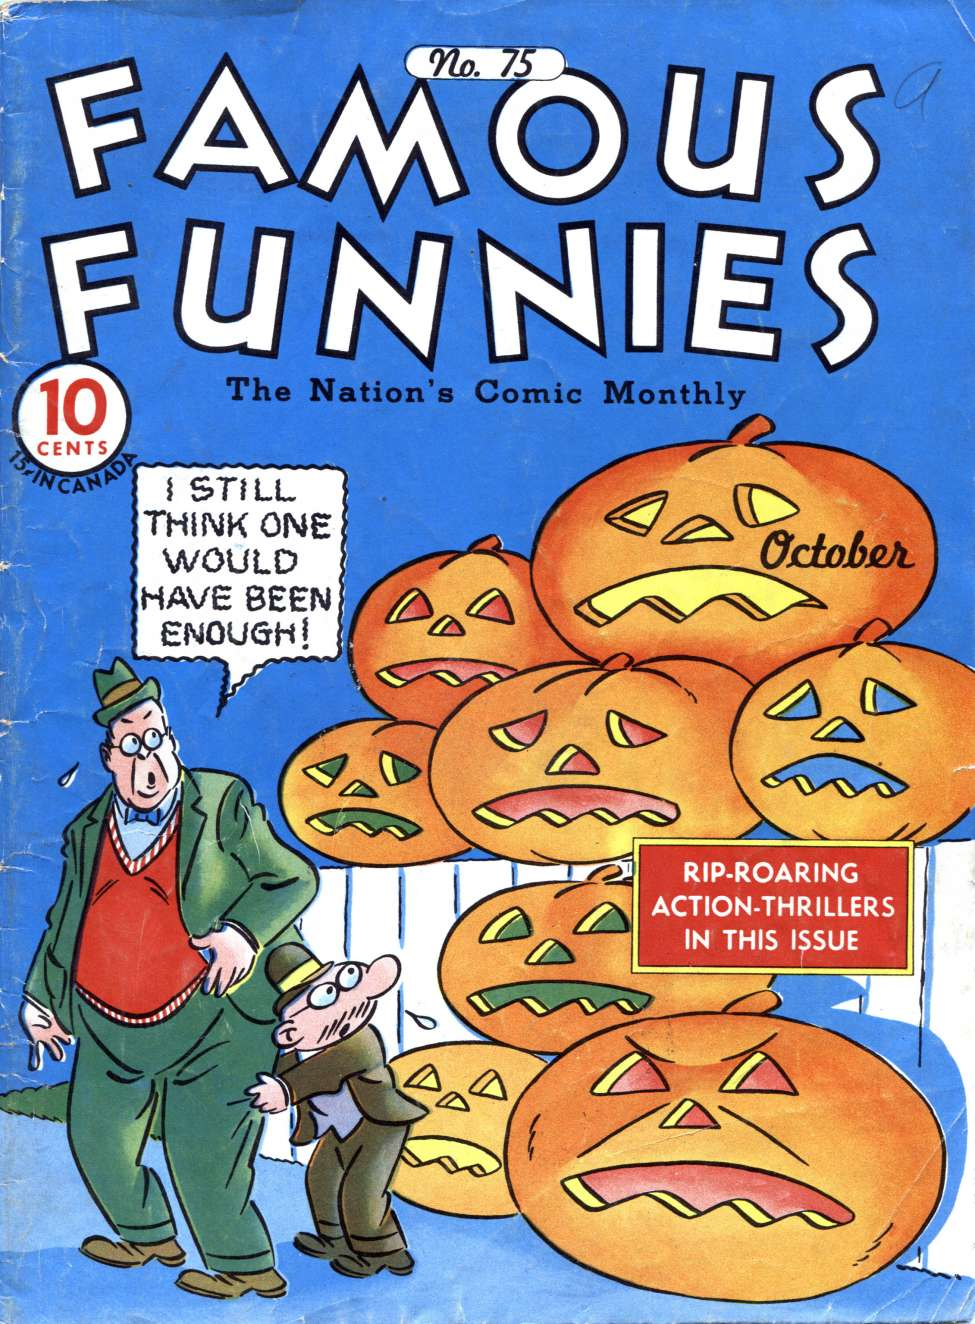 Comic Book Cover For Famous Funnies #75